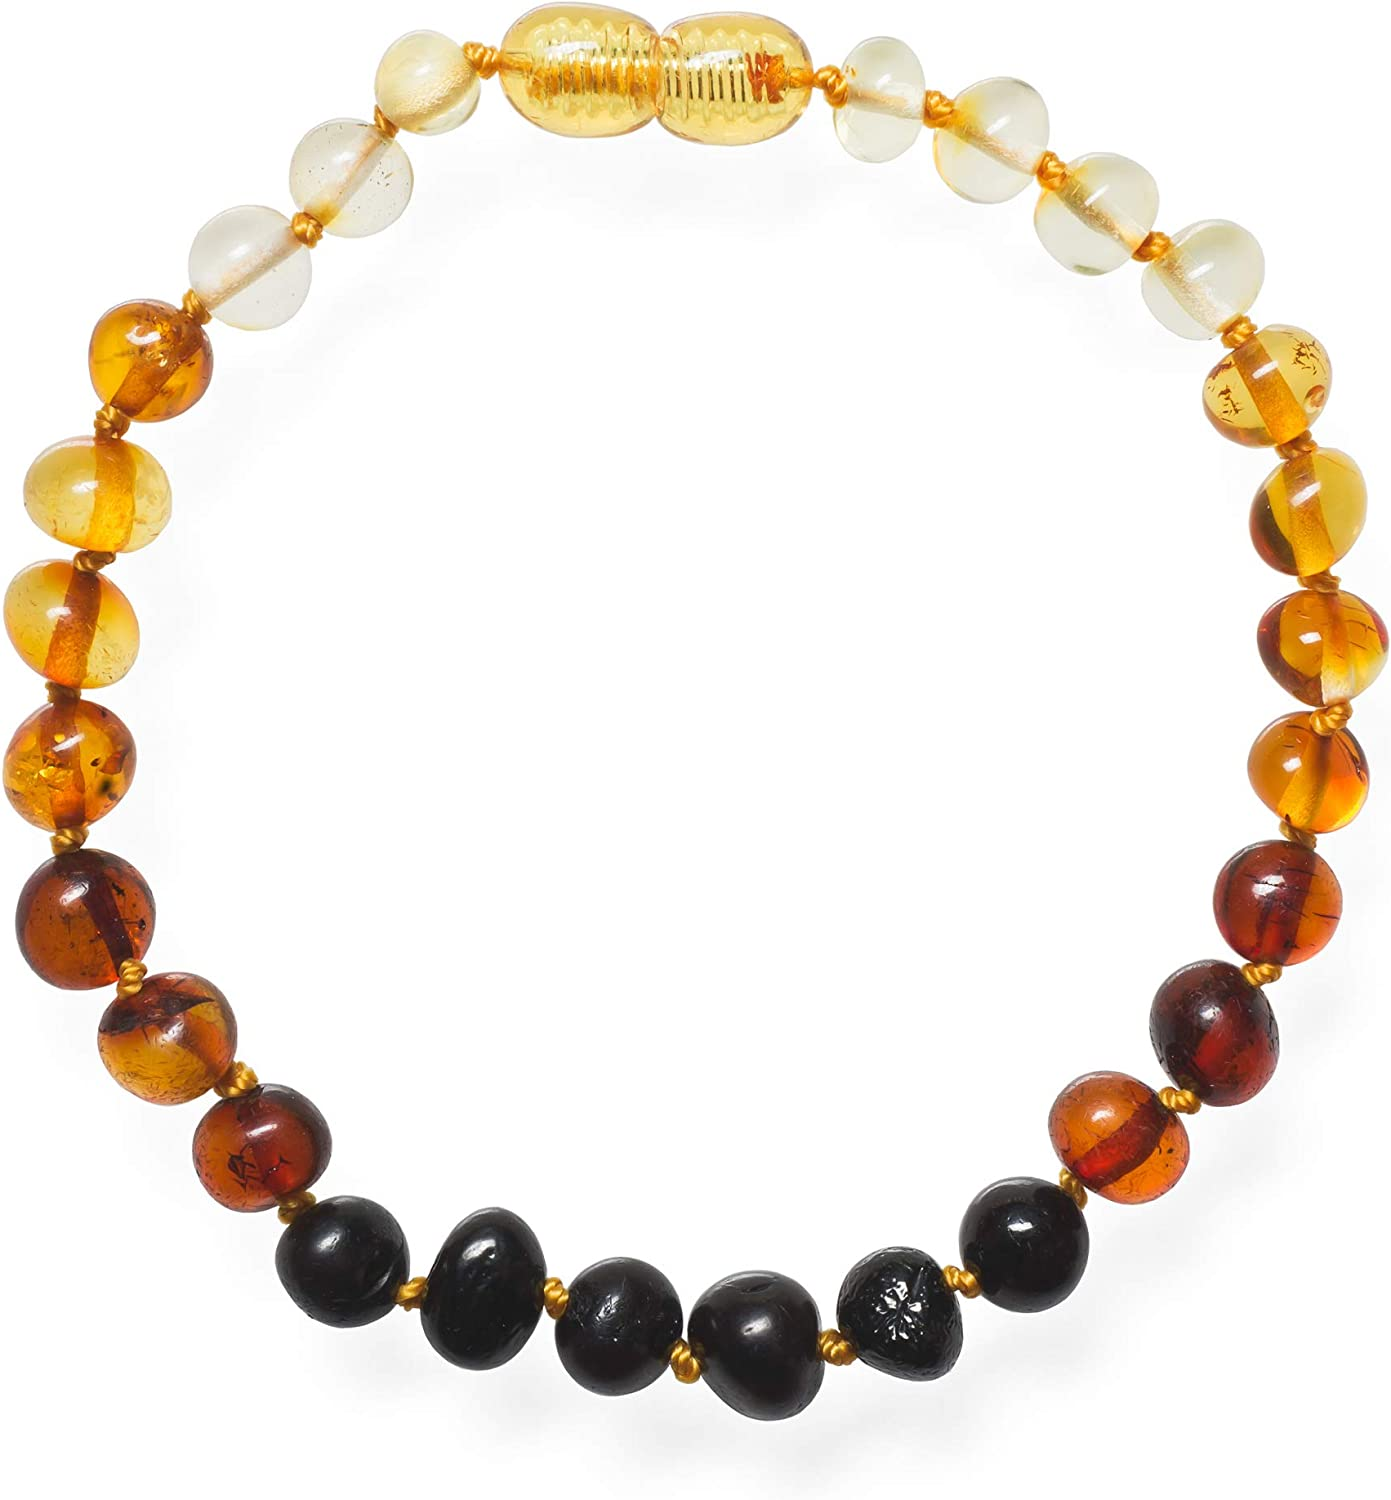 Arthritis and More All Natural Pain Relief for Adults to Help Migraines Meraki Adult Amber Bracelet Rainbow Color Sinuses Polished Baroque Baltic Amber Bracelet 8 Inches